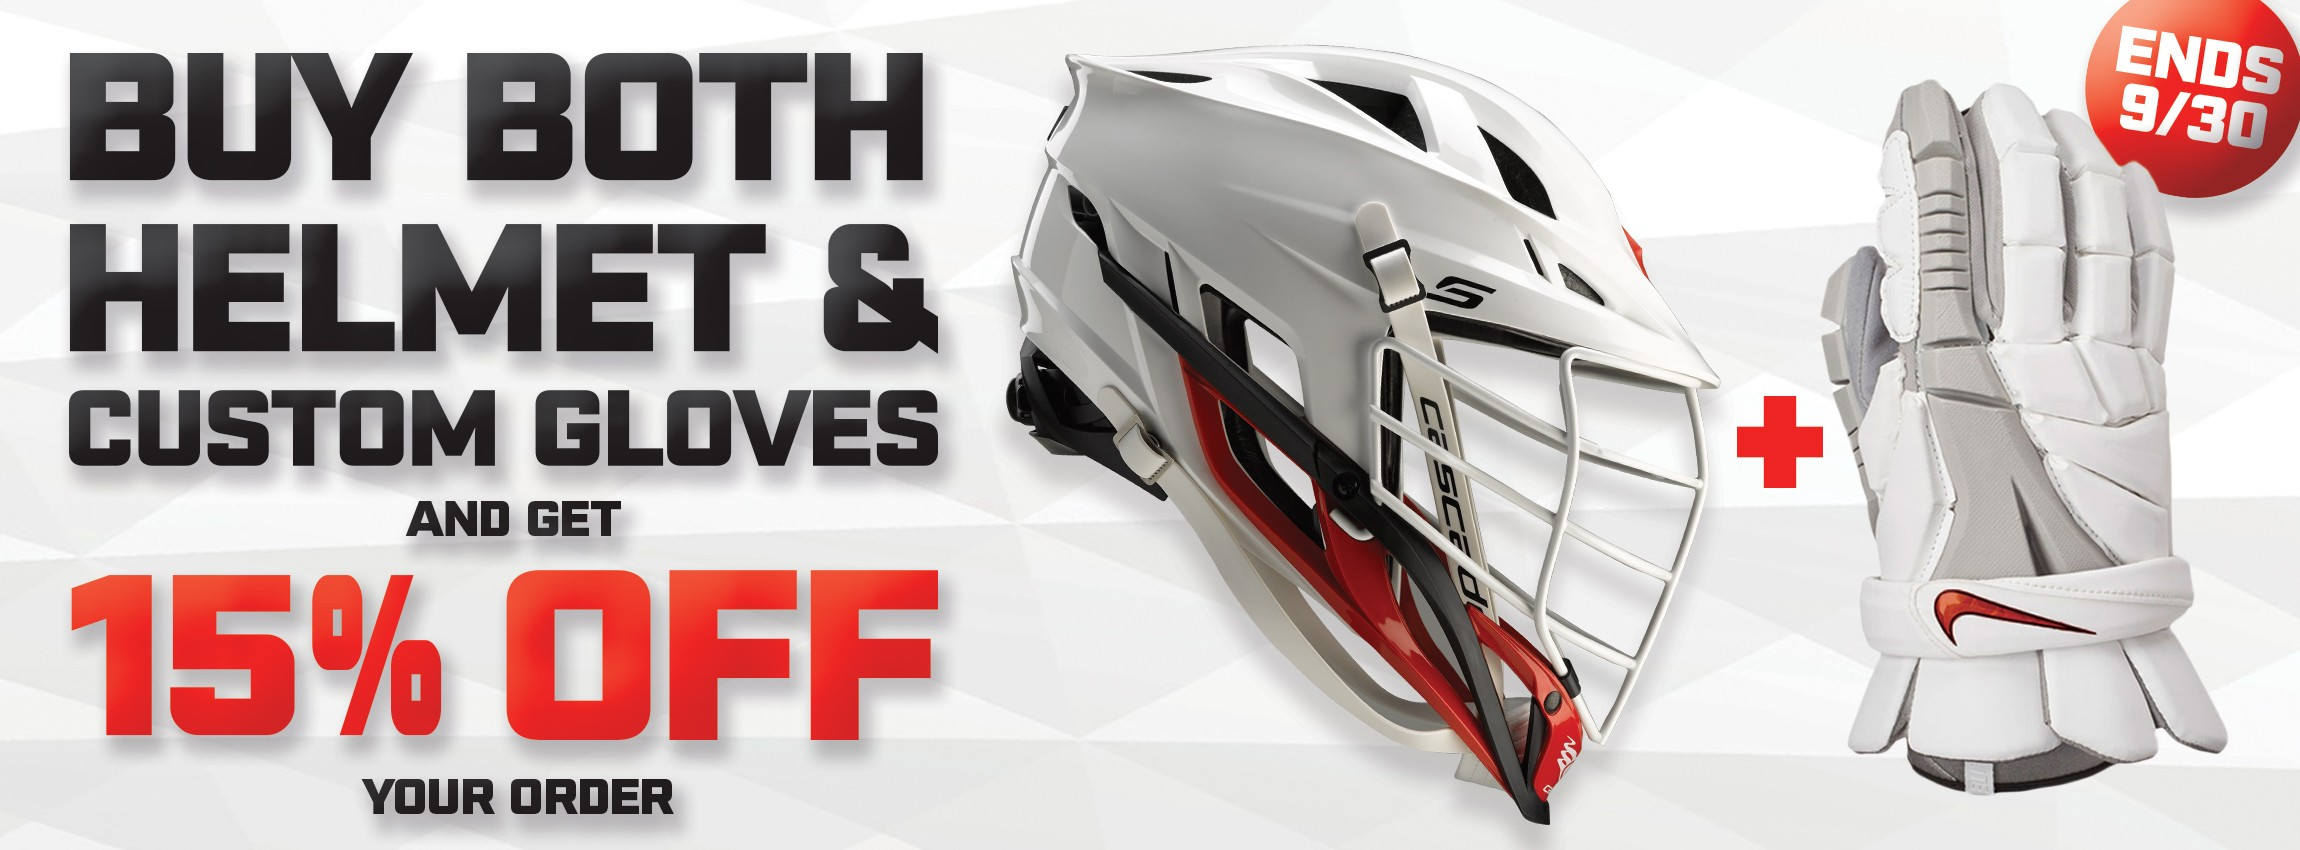 FREE Shipping on Custom Gloves and Helmets with 15% OFF - Lacrosse Unlimited